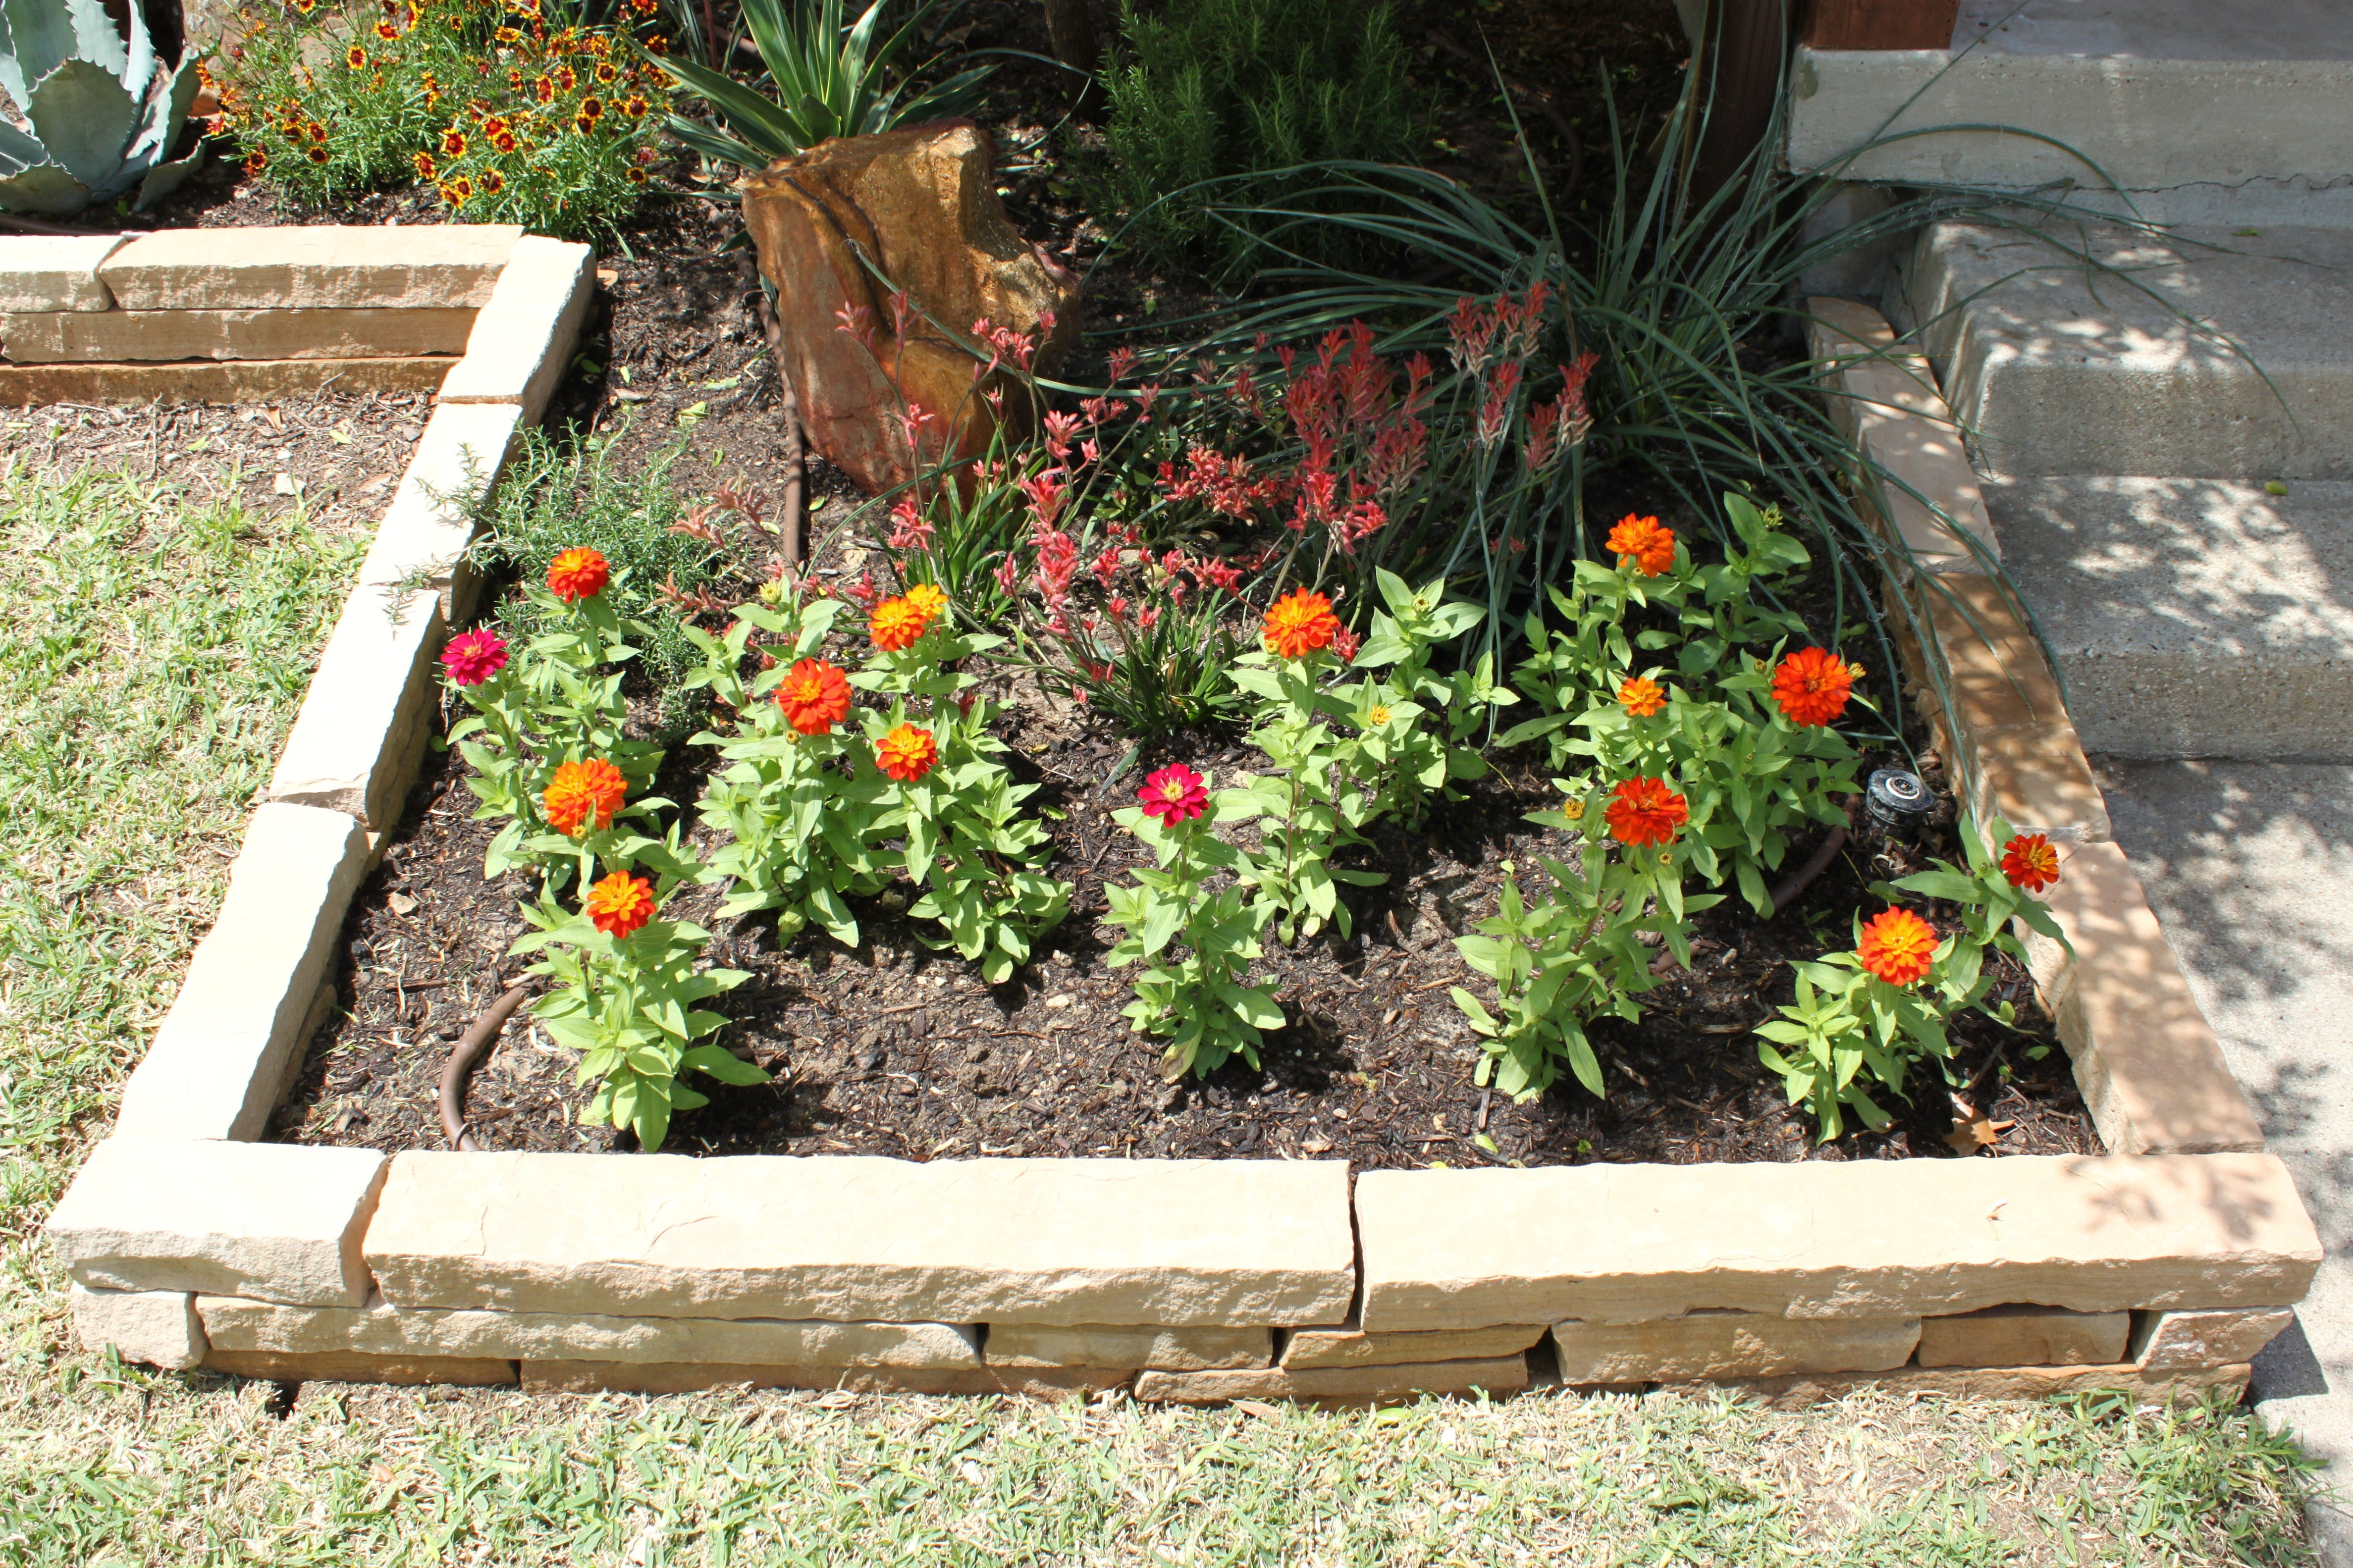 Layered Flower Bed Square Flower Bed Full of